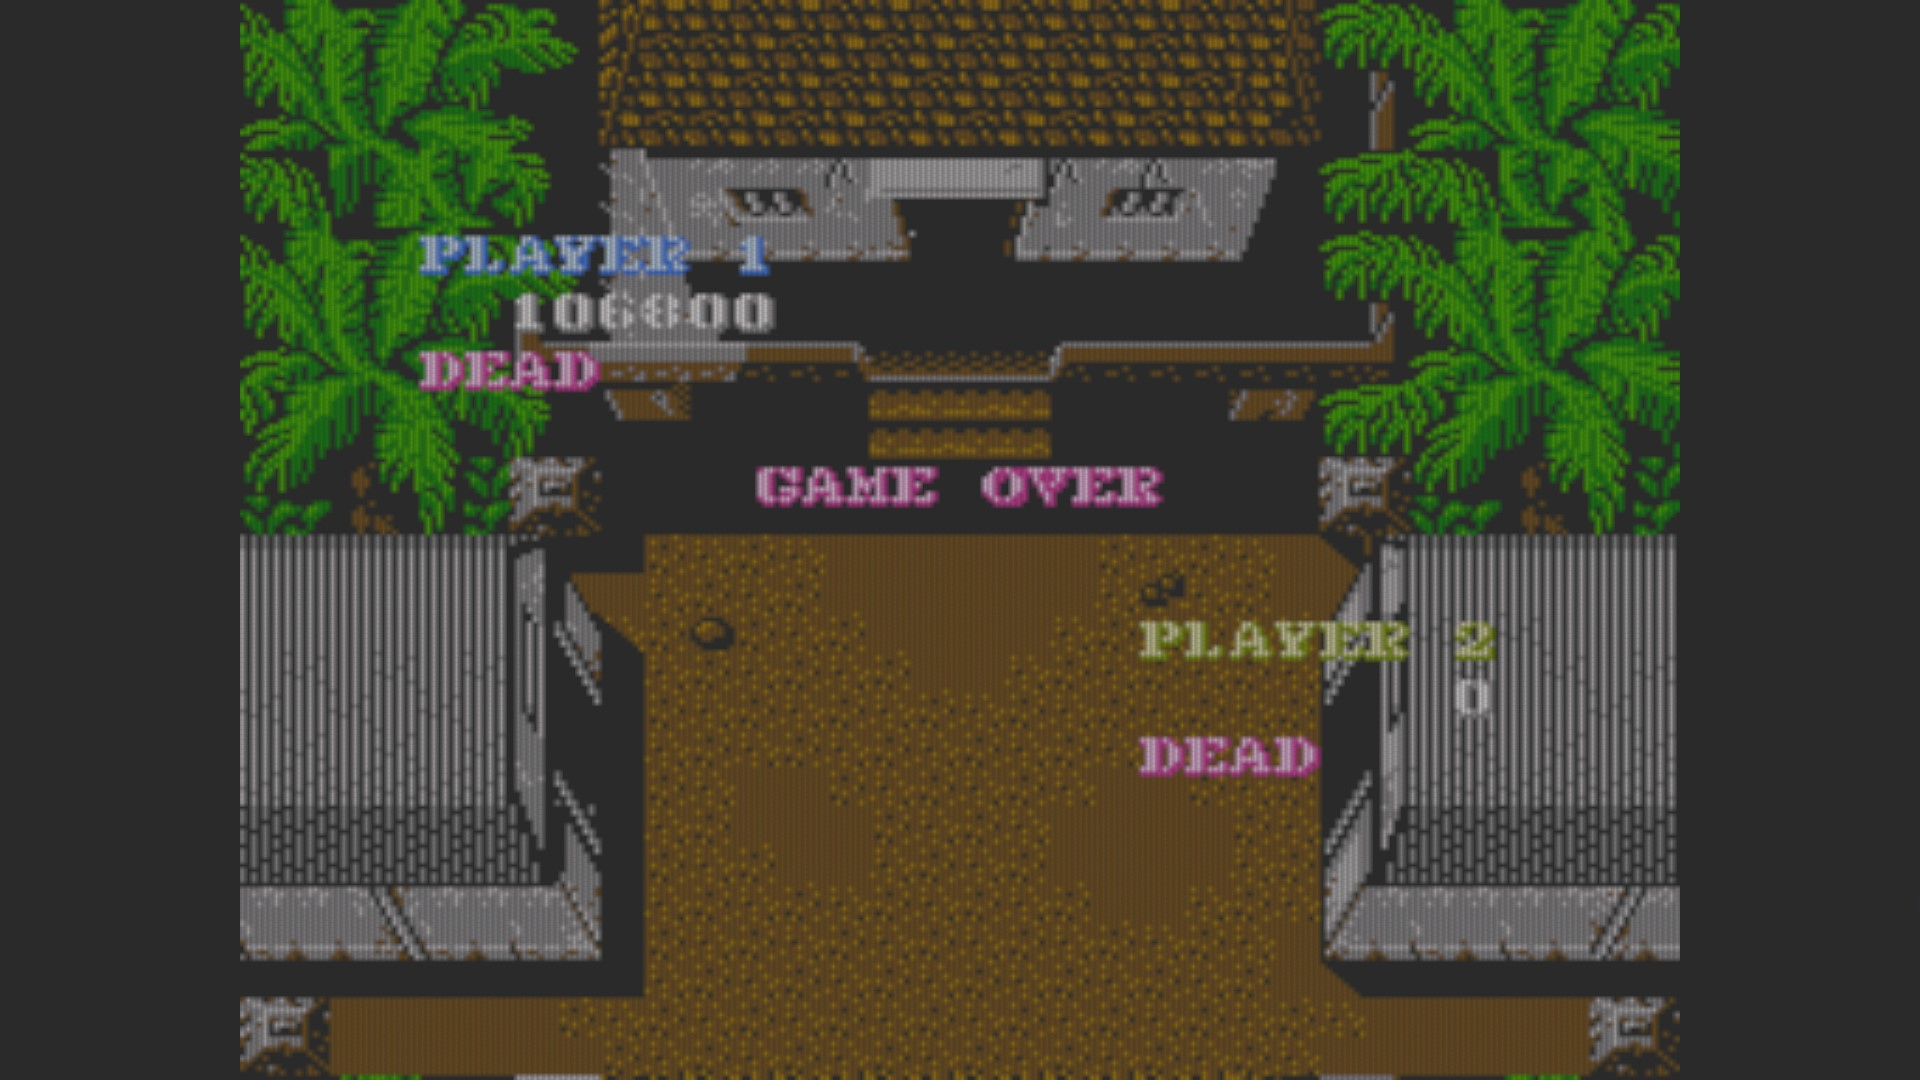 SNK 40th Anniversary Collection: Guerrilla War [Console] 106,800 points